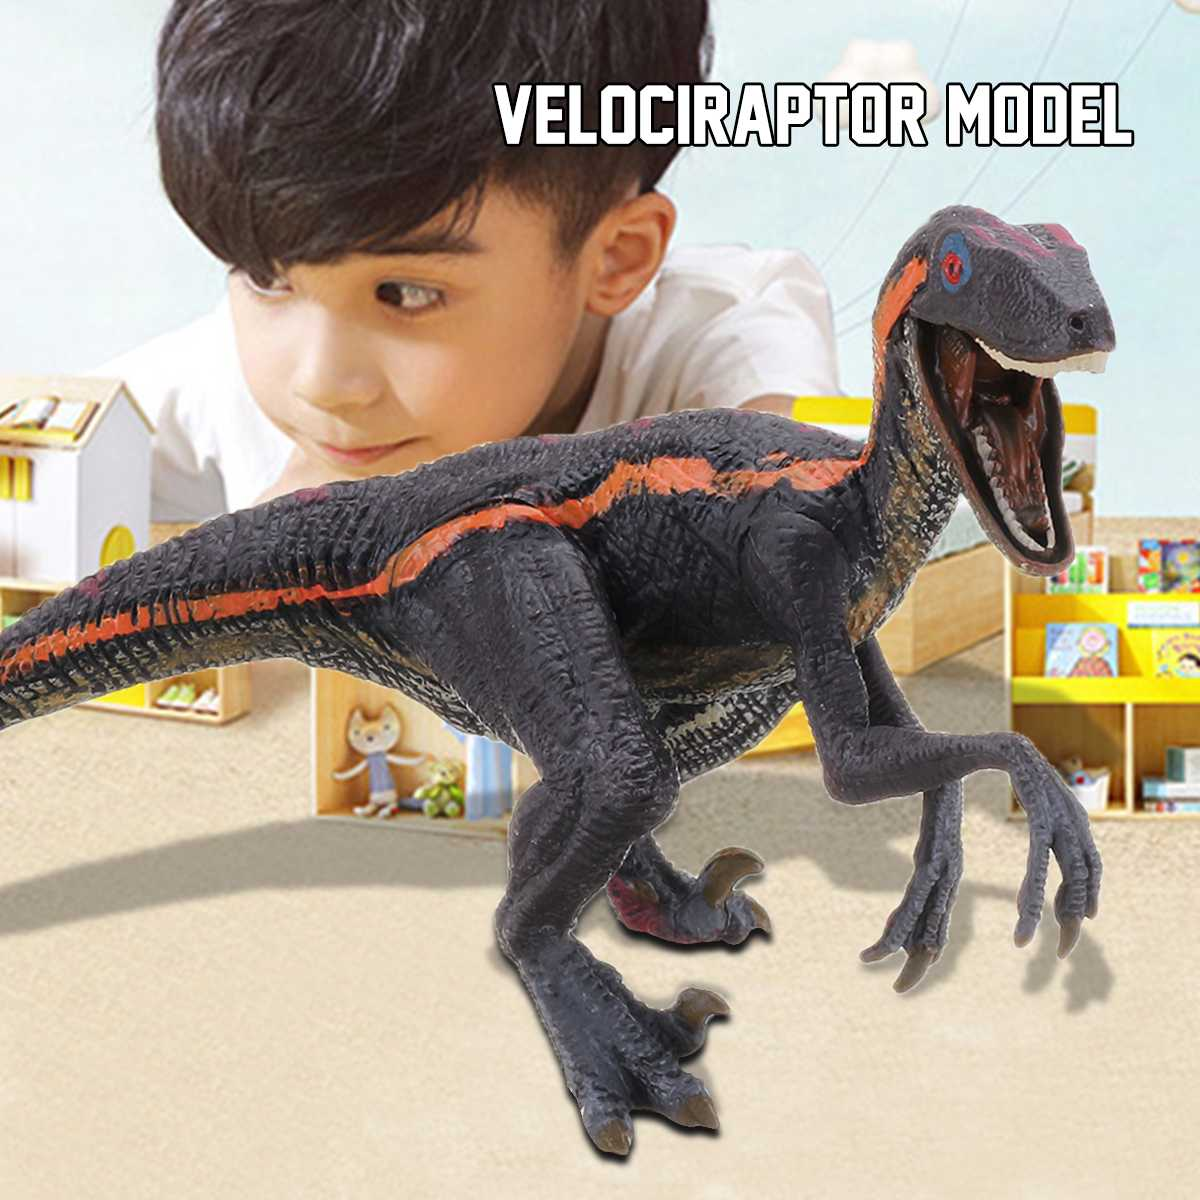 World Dinosaur Action Figure Indoraptor Tyrannosaurus Rex Velociraptor Indominus Rex Toy Dolls Gift for KidsWorld Dinosaur Action Figure Indoraptor Tyrannosaurus Rex Velociraptor Indominus Rex Toy Dolls Gift for Kids